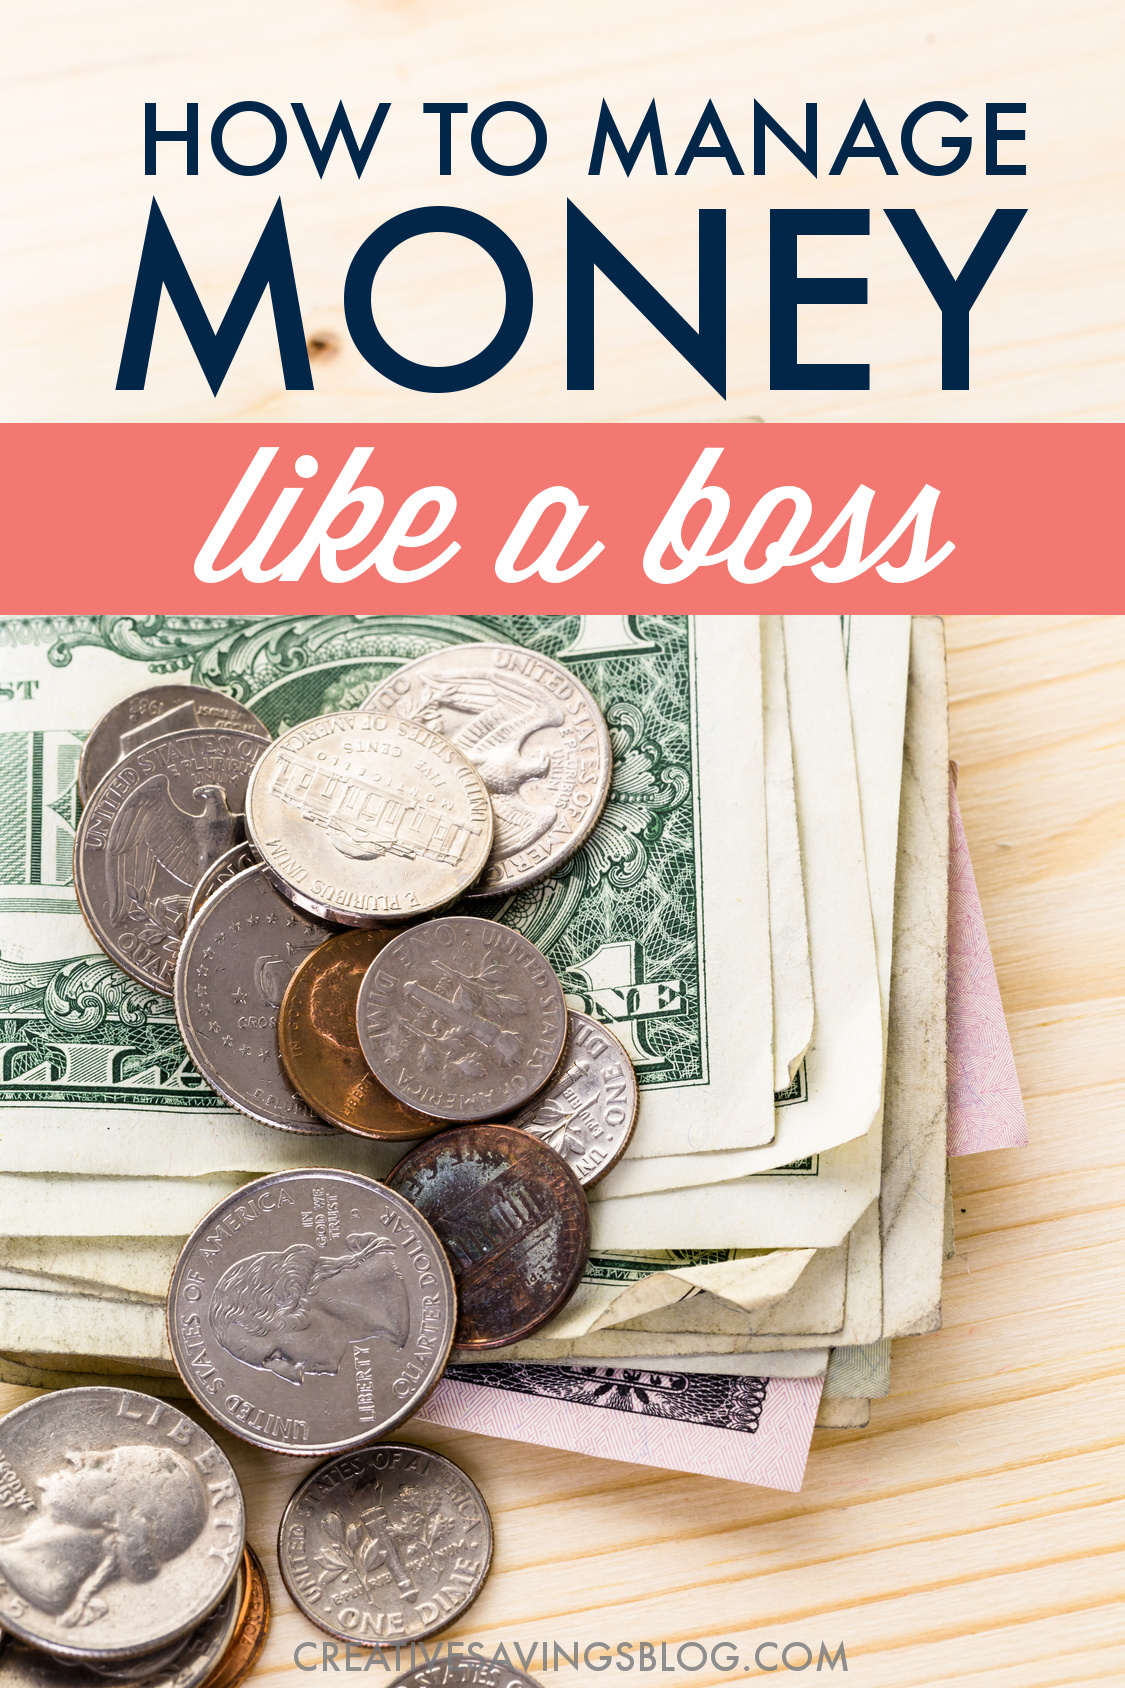 This page has SO many resources to spend and save smarter!! I bookmarked it immediately and have been working my way through all the posts. Each day I try something new and as a result, I'm doing better financially than I ever have before. She covers everything from budgeting tips to credit cards, and even offers a FREE money saving course! #moneymanagement #moneysavingtips #savingmoney #budgeting